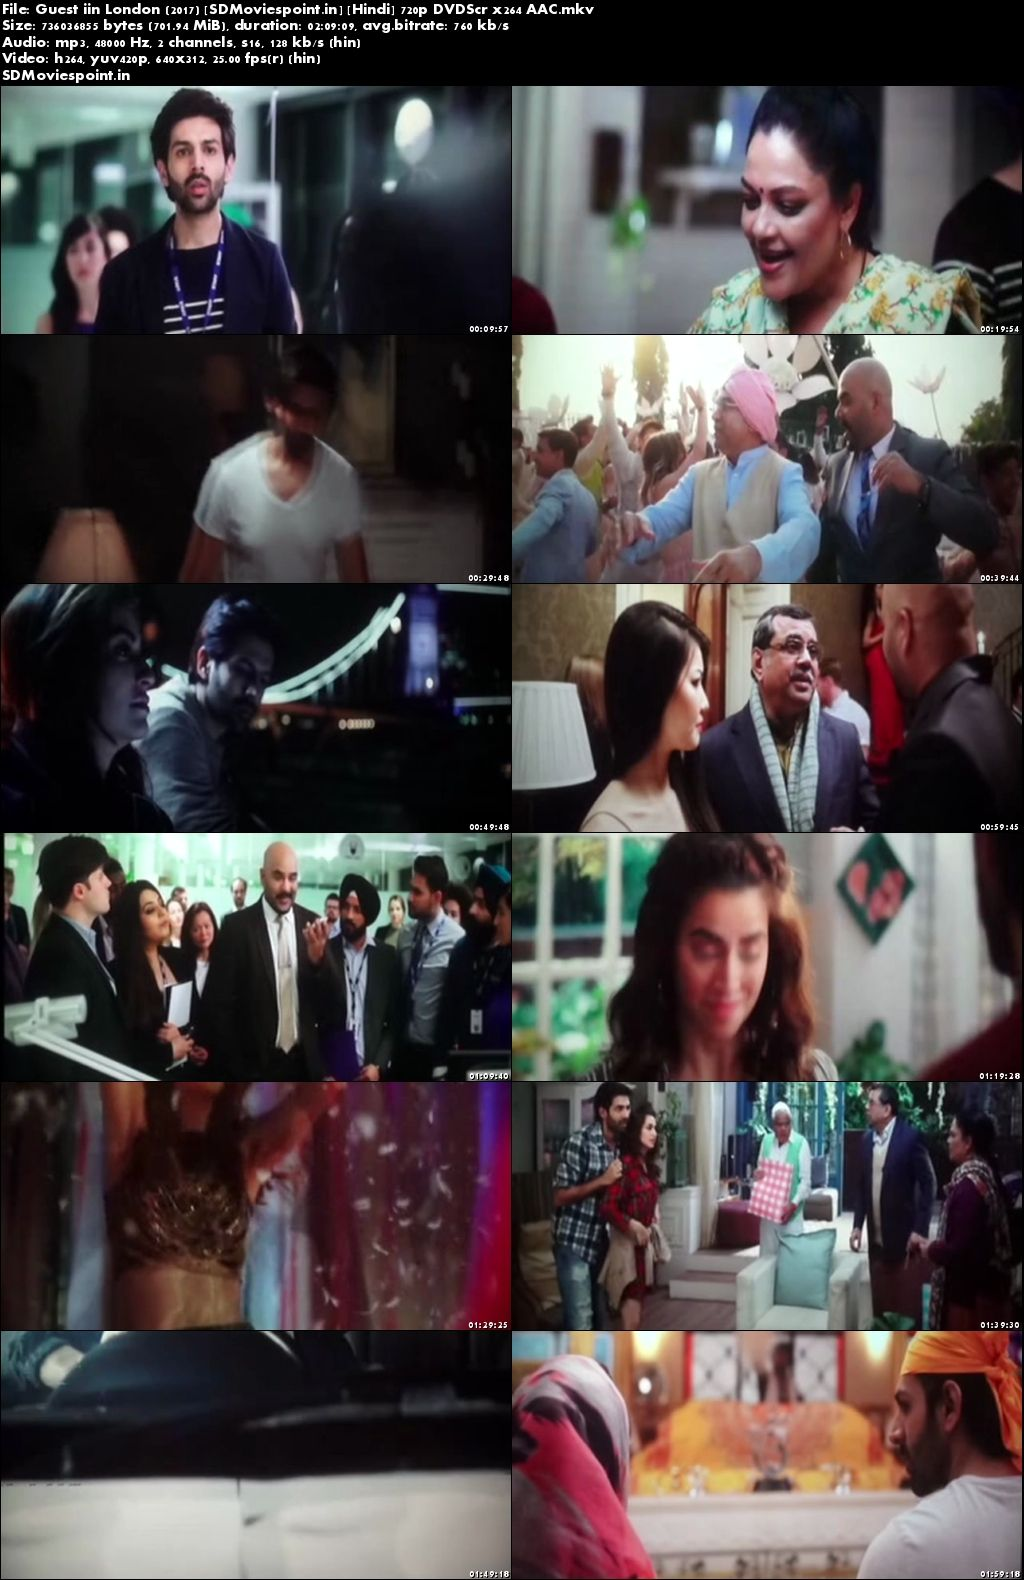 Screen Shot Guest iin London 2017 Full HD Movie Download Free